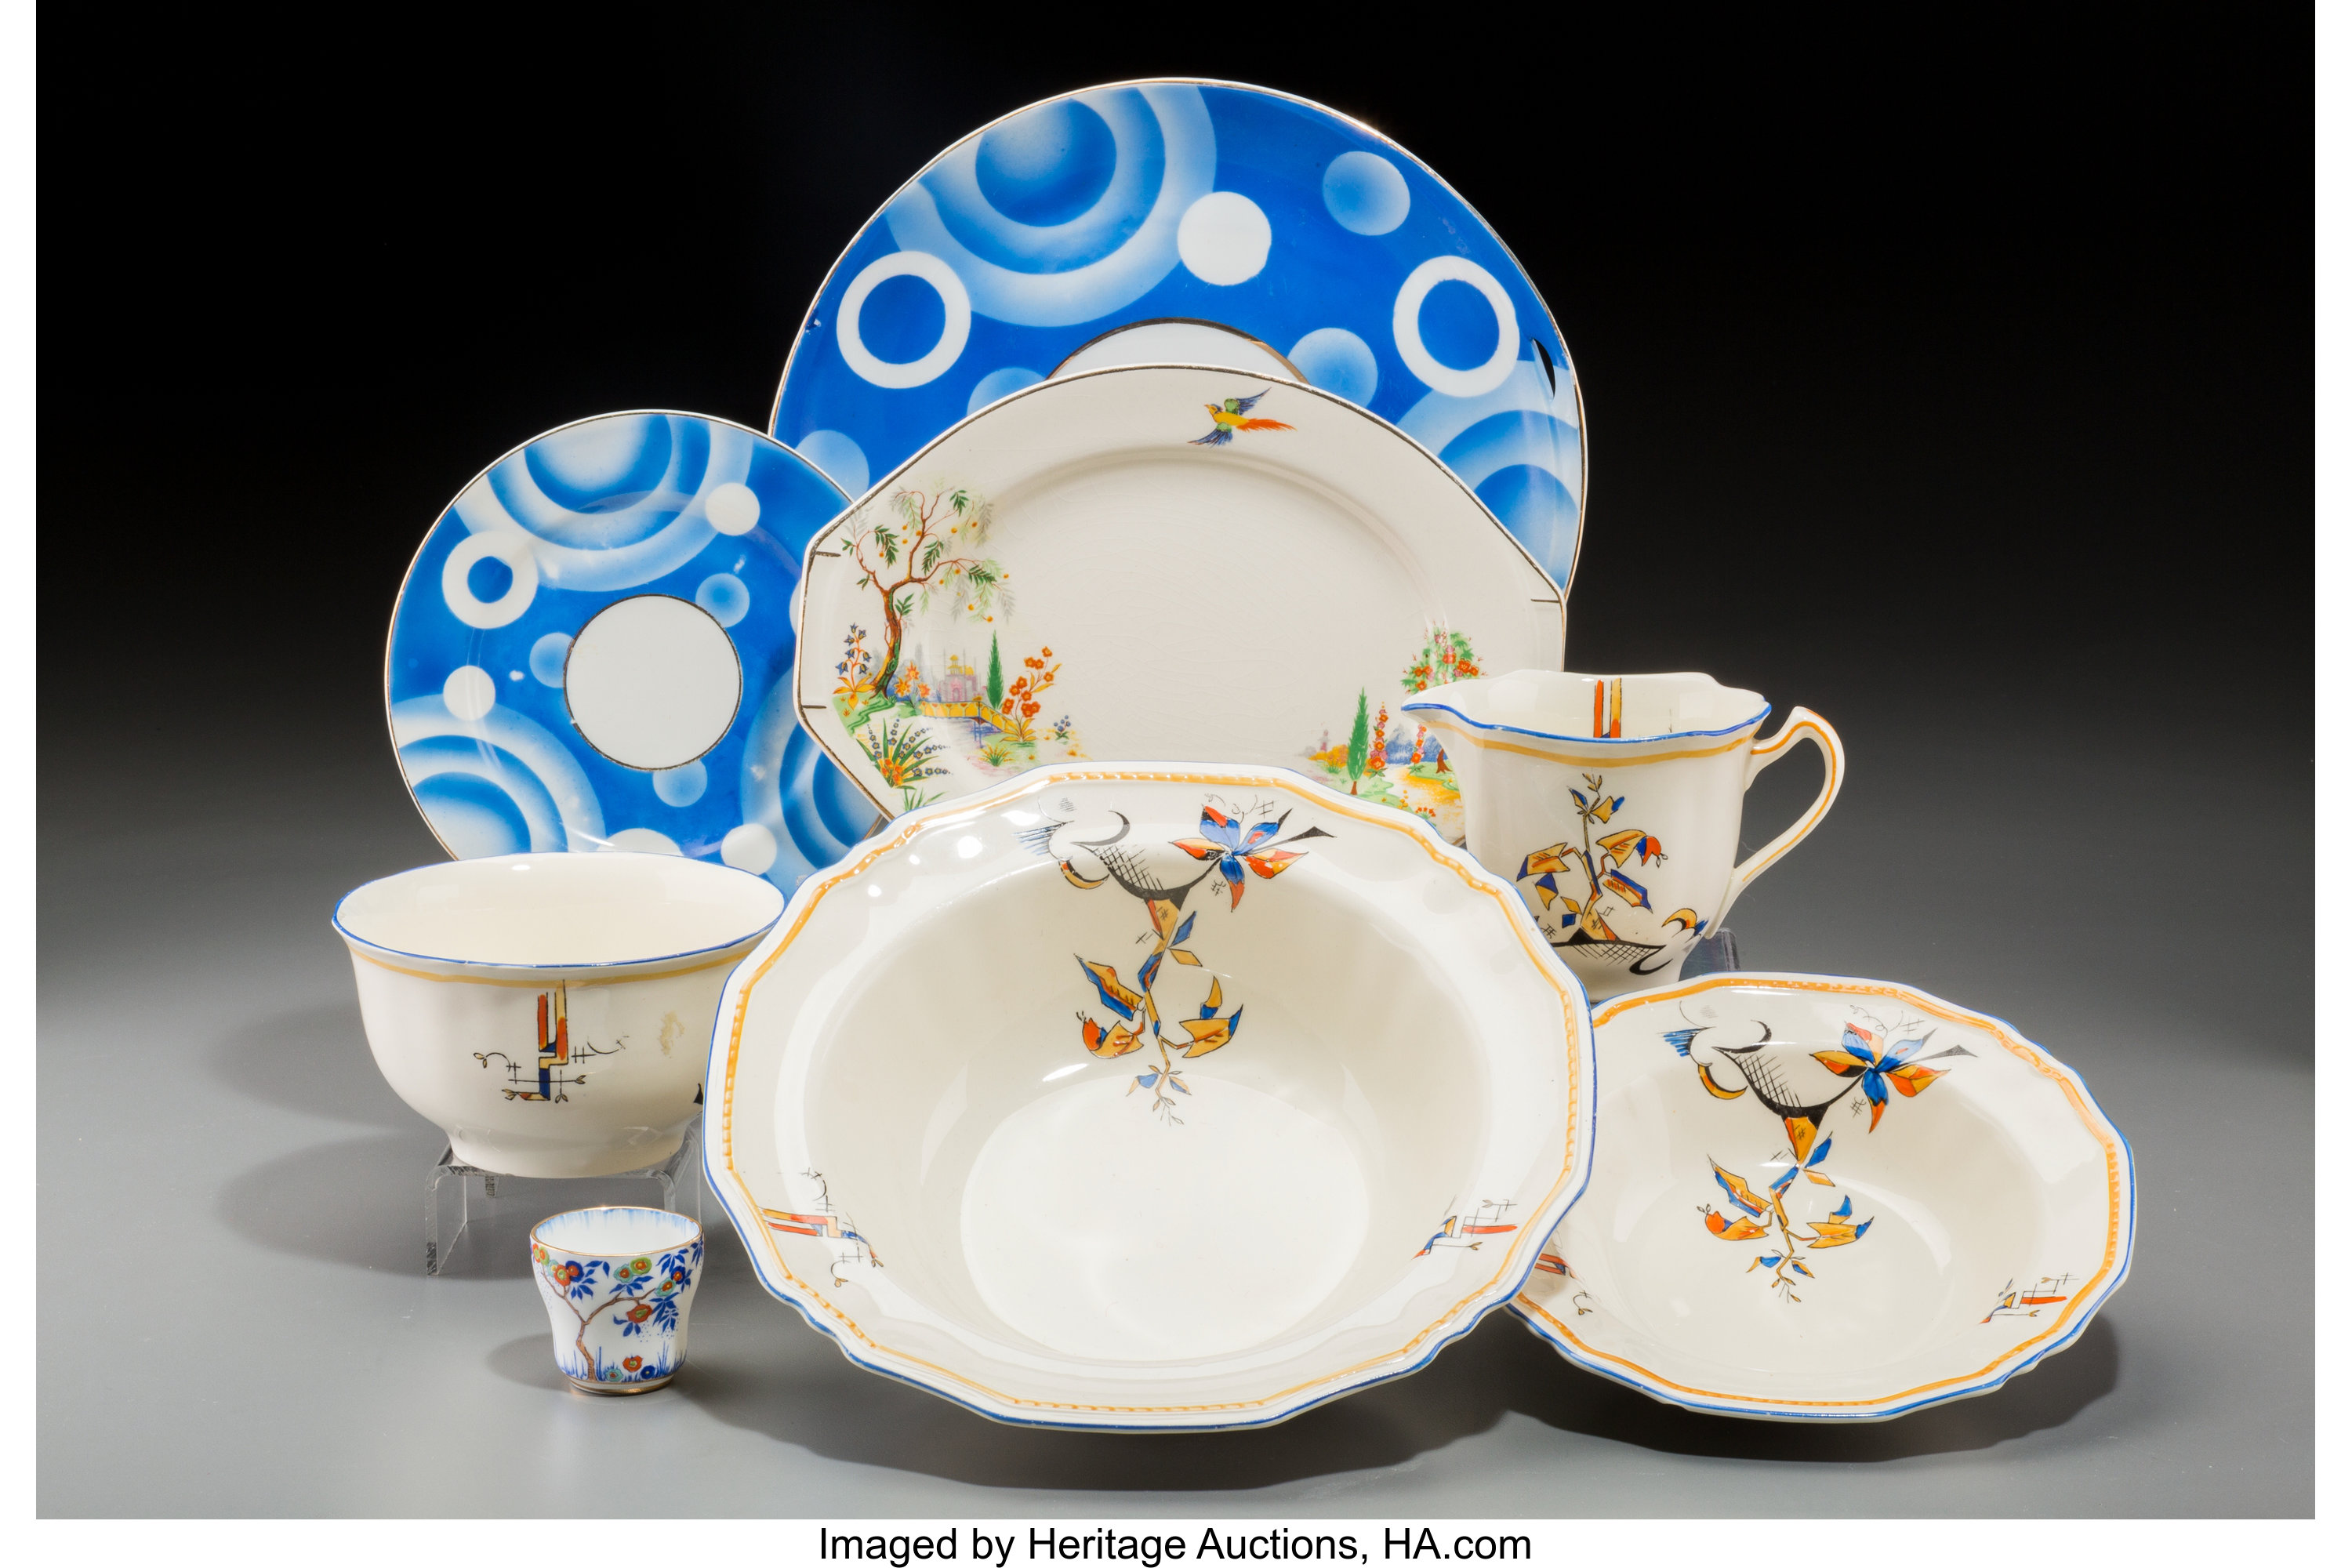 Twenty One Pieces Of Art Deco Ceramic Dinnerware Circa 1925 1940 Lot 65477 Heritage Auctions